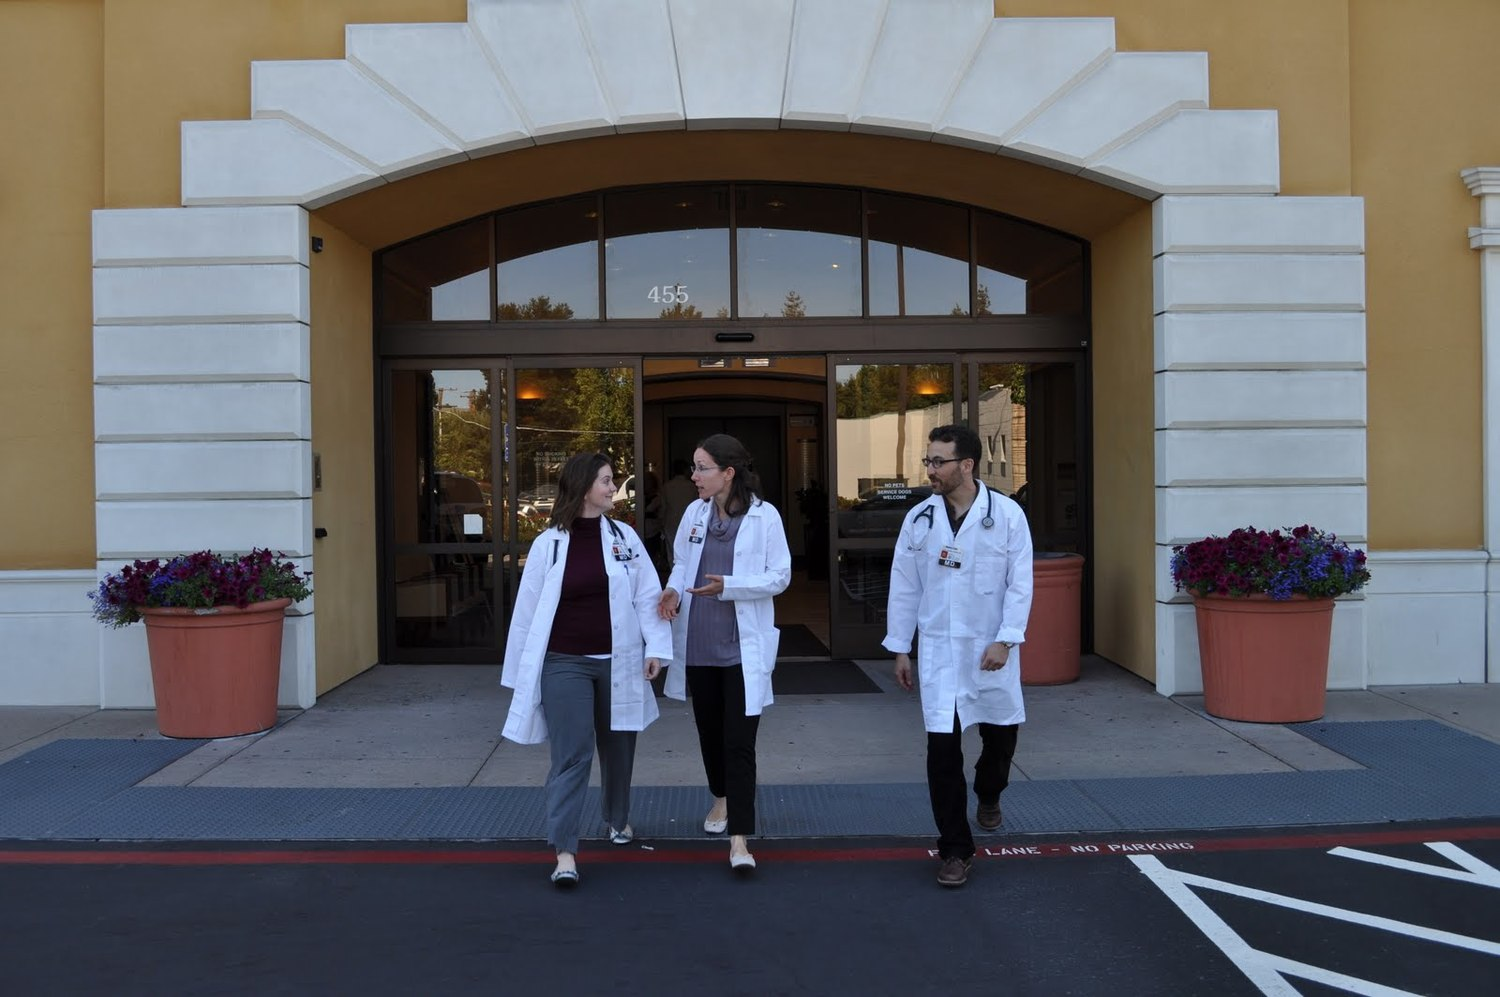 Where We Work — Stanford - O'Connor Family Medicine Residency